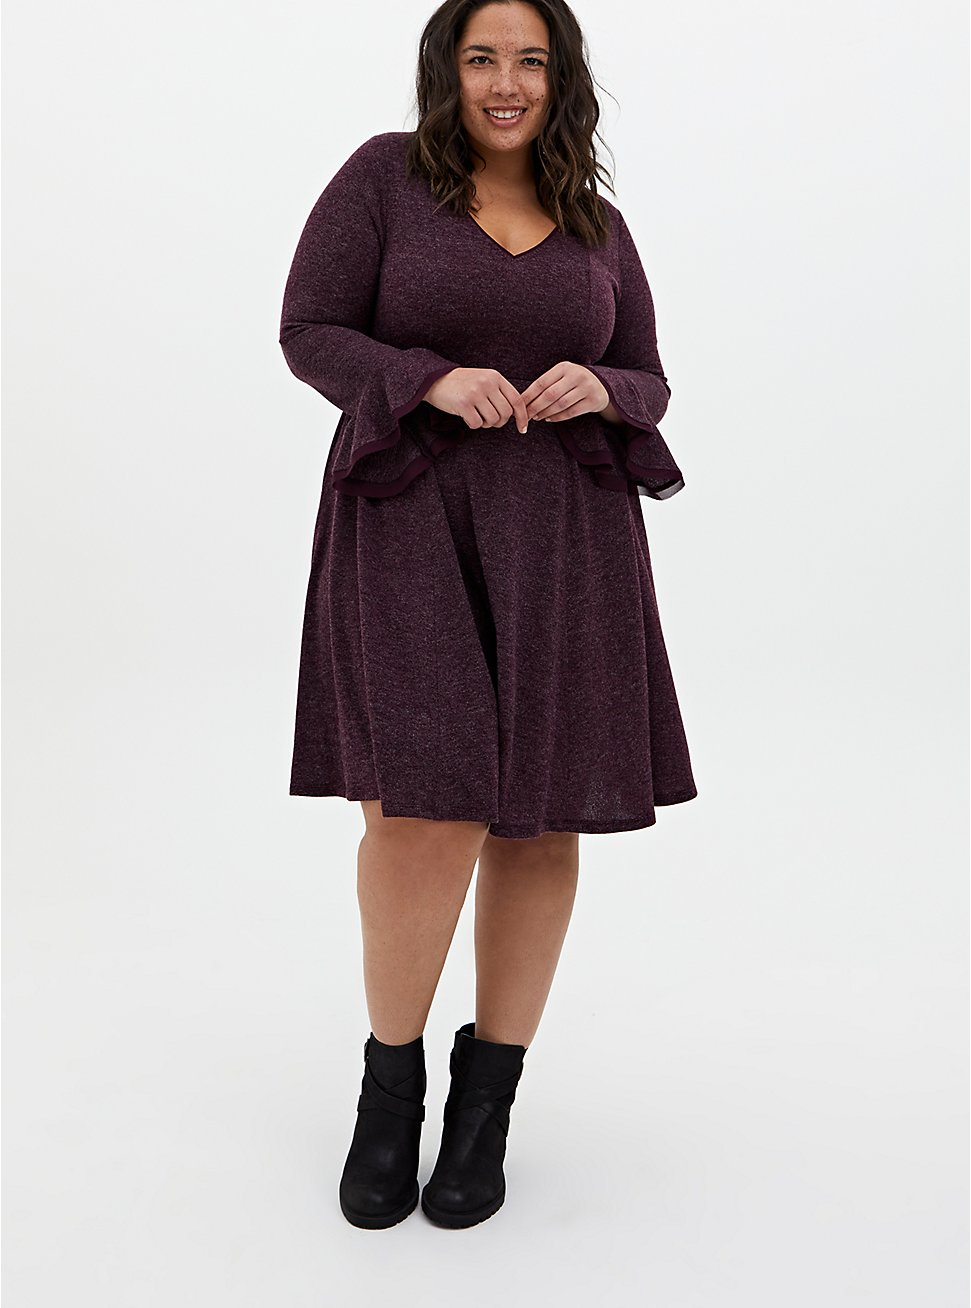 Super Soft Plush Burgundy Purple Skater Dress, WINETASTING, hi-res